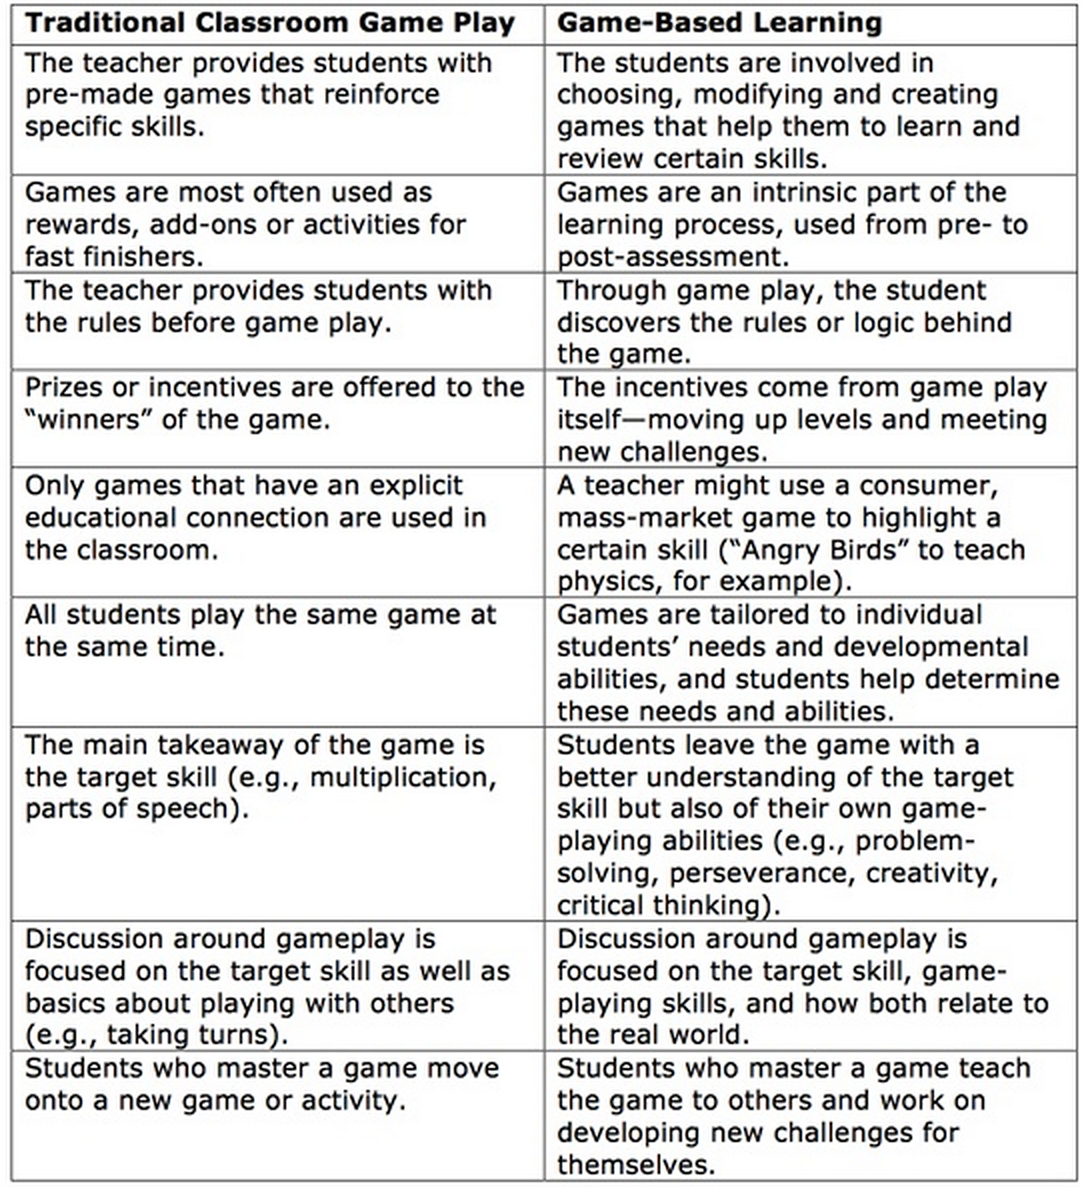 a good chart on traditional classroom game play vs game